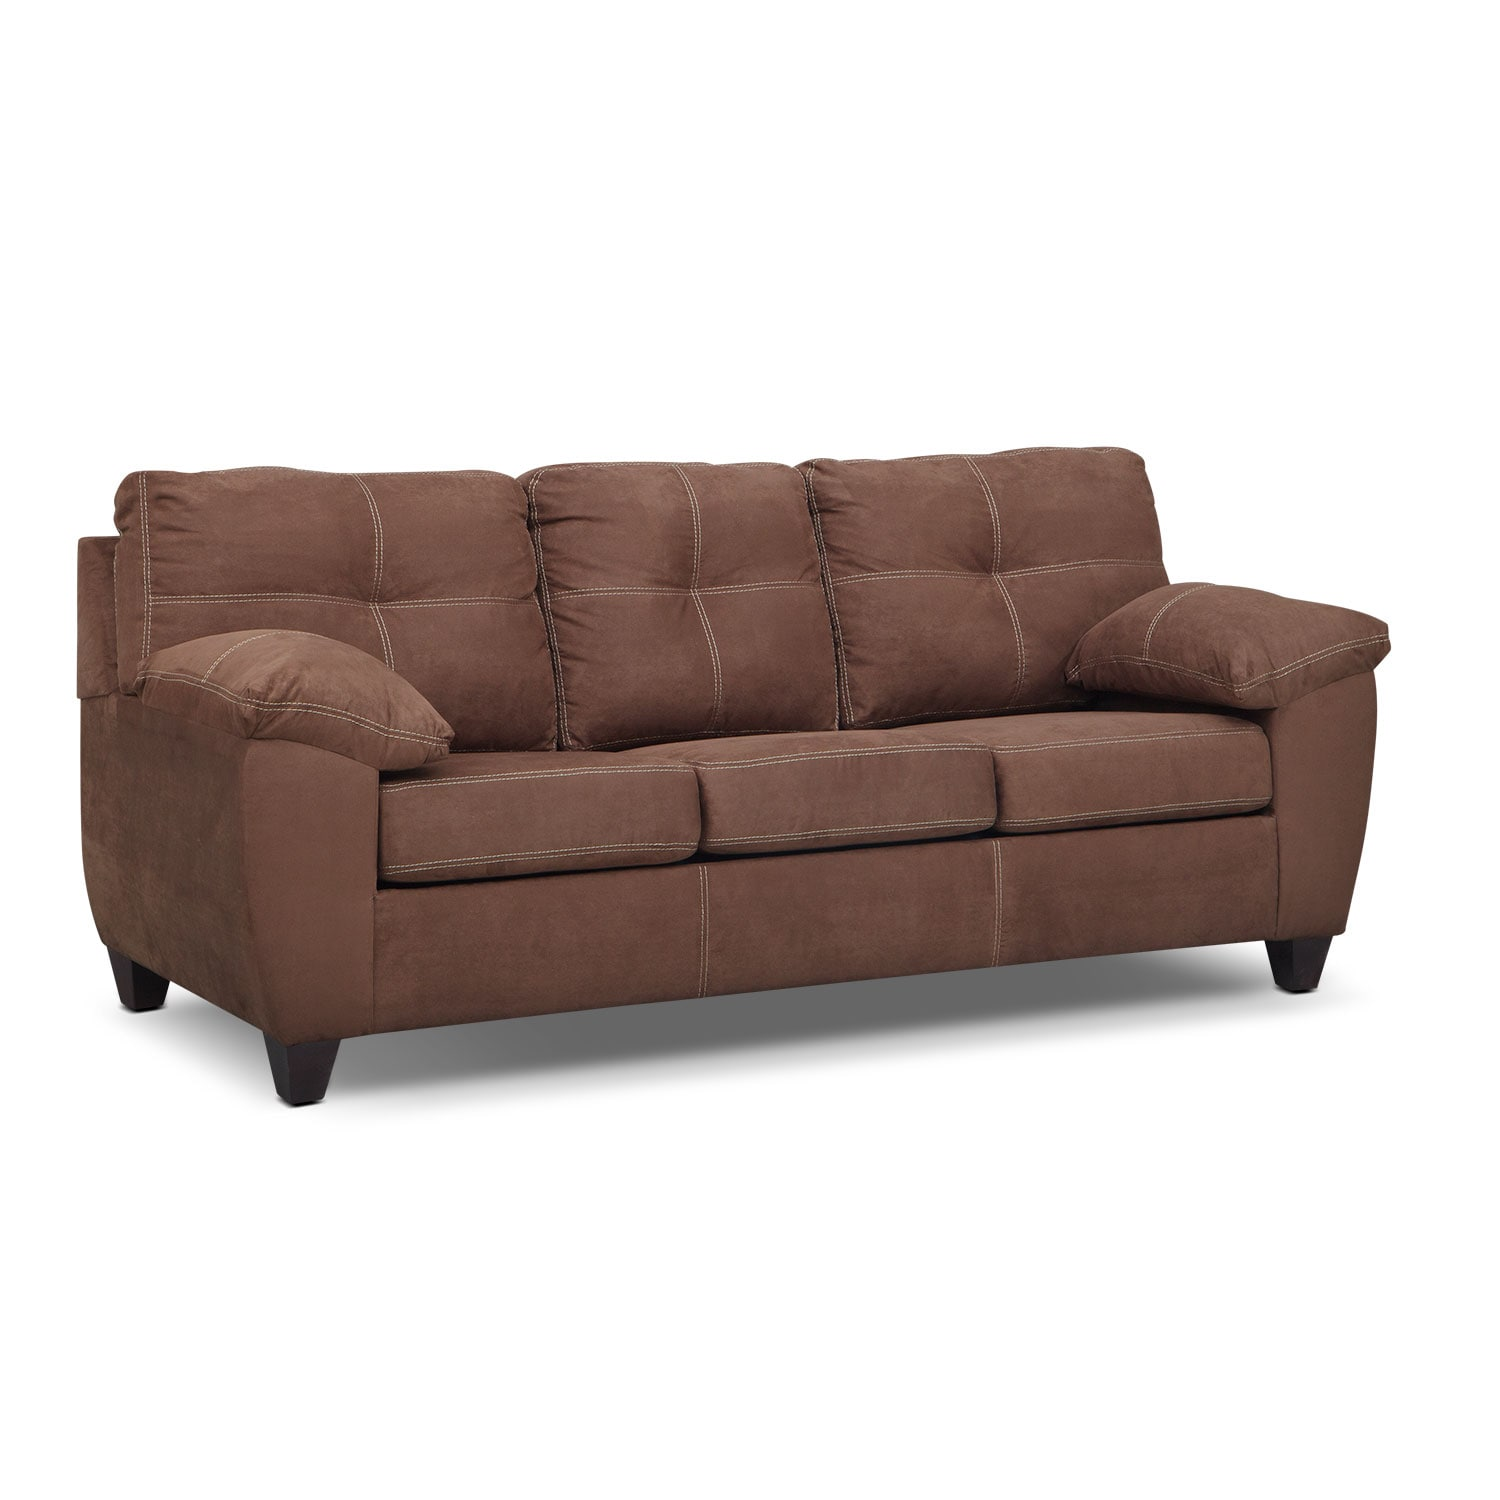 Rialto Innerspring Queen Sleeper Sofa - Coffee